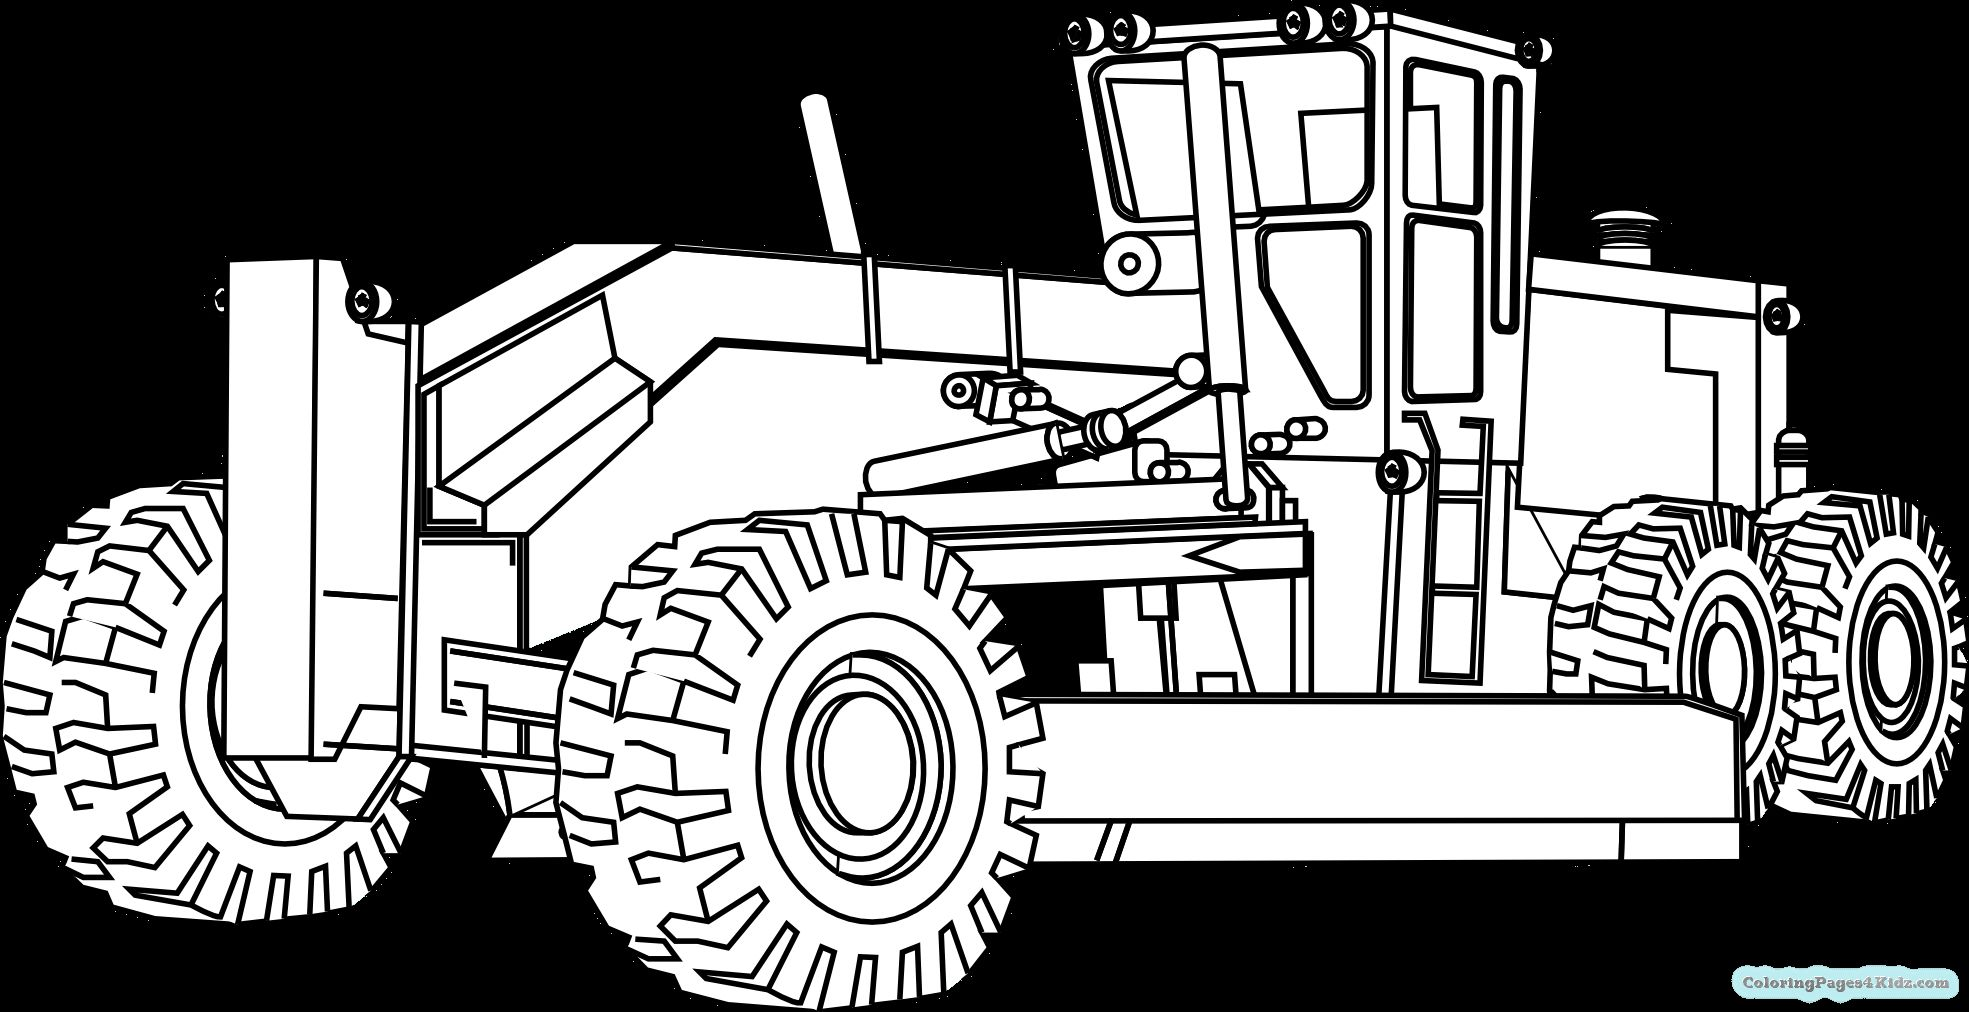 Fortable Blippi Coloring Pages Ertasvuelo Tractor Coloring Pages Truck Coloring Pages Coloring Pages